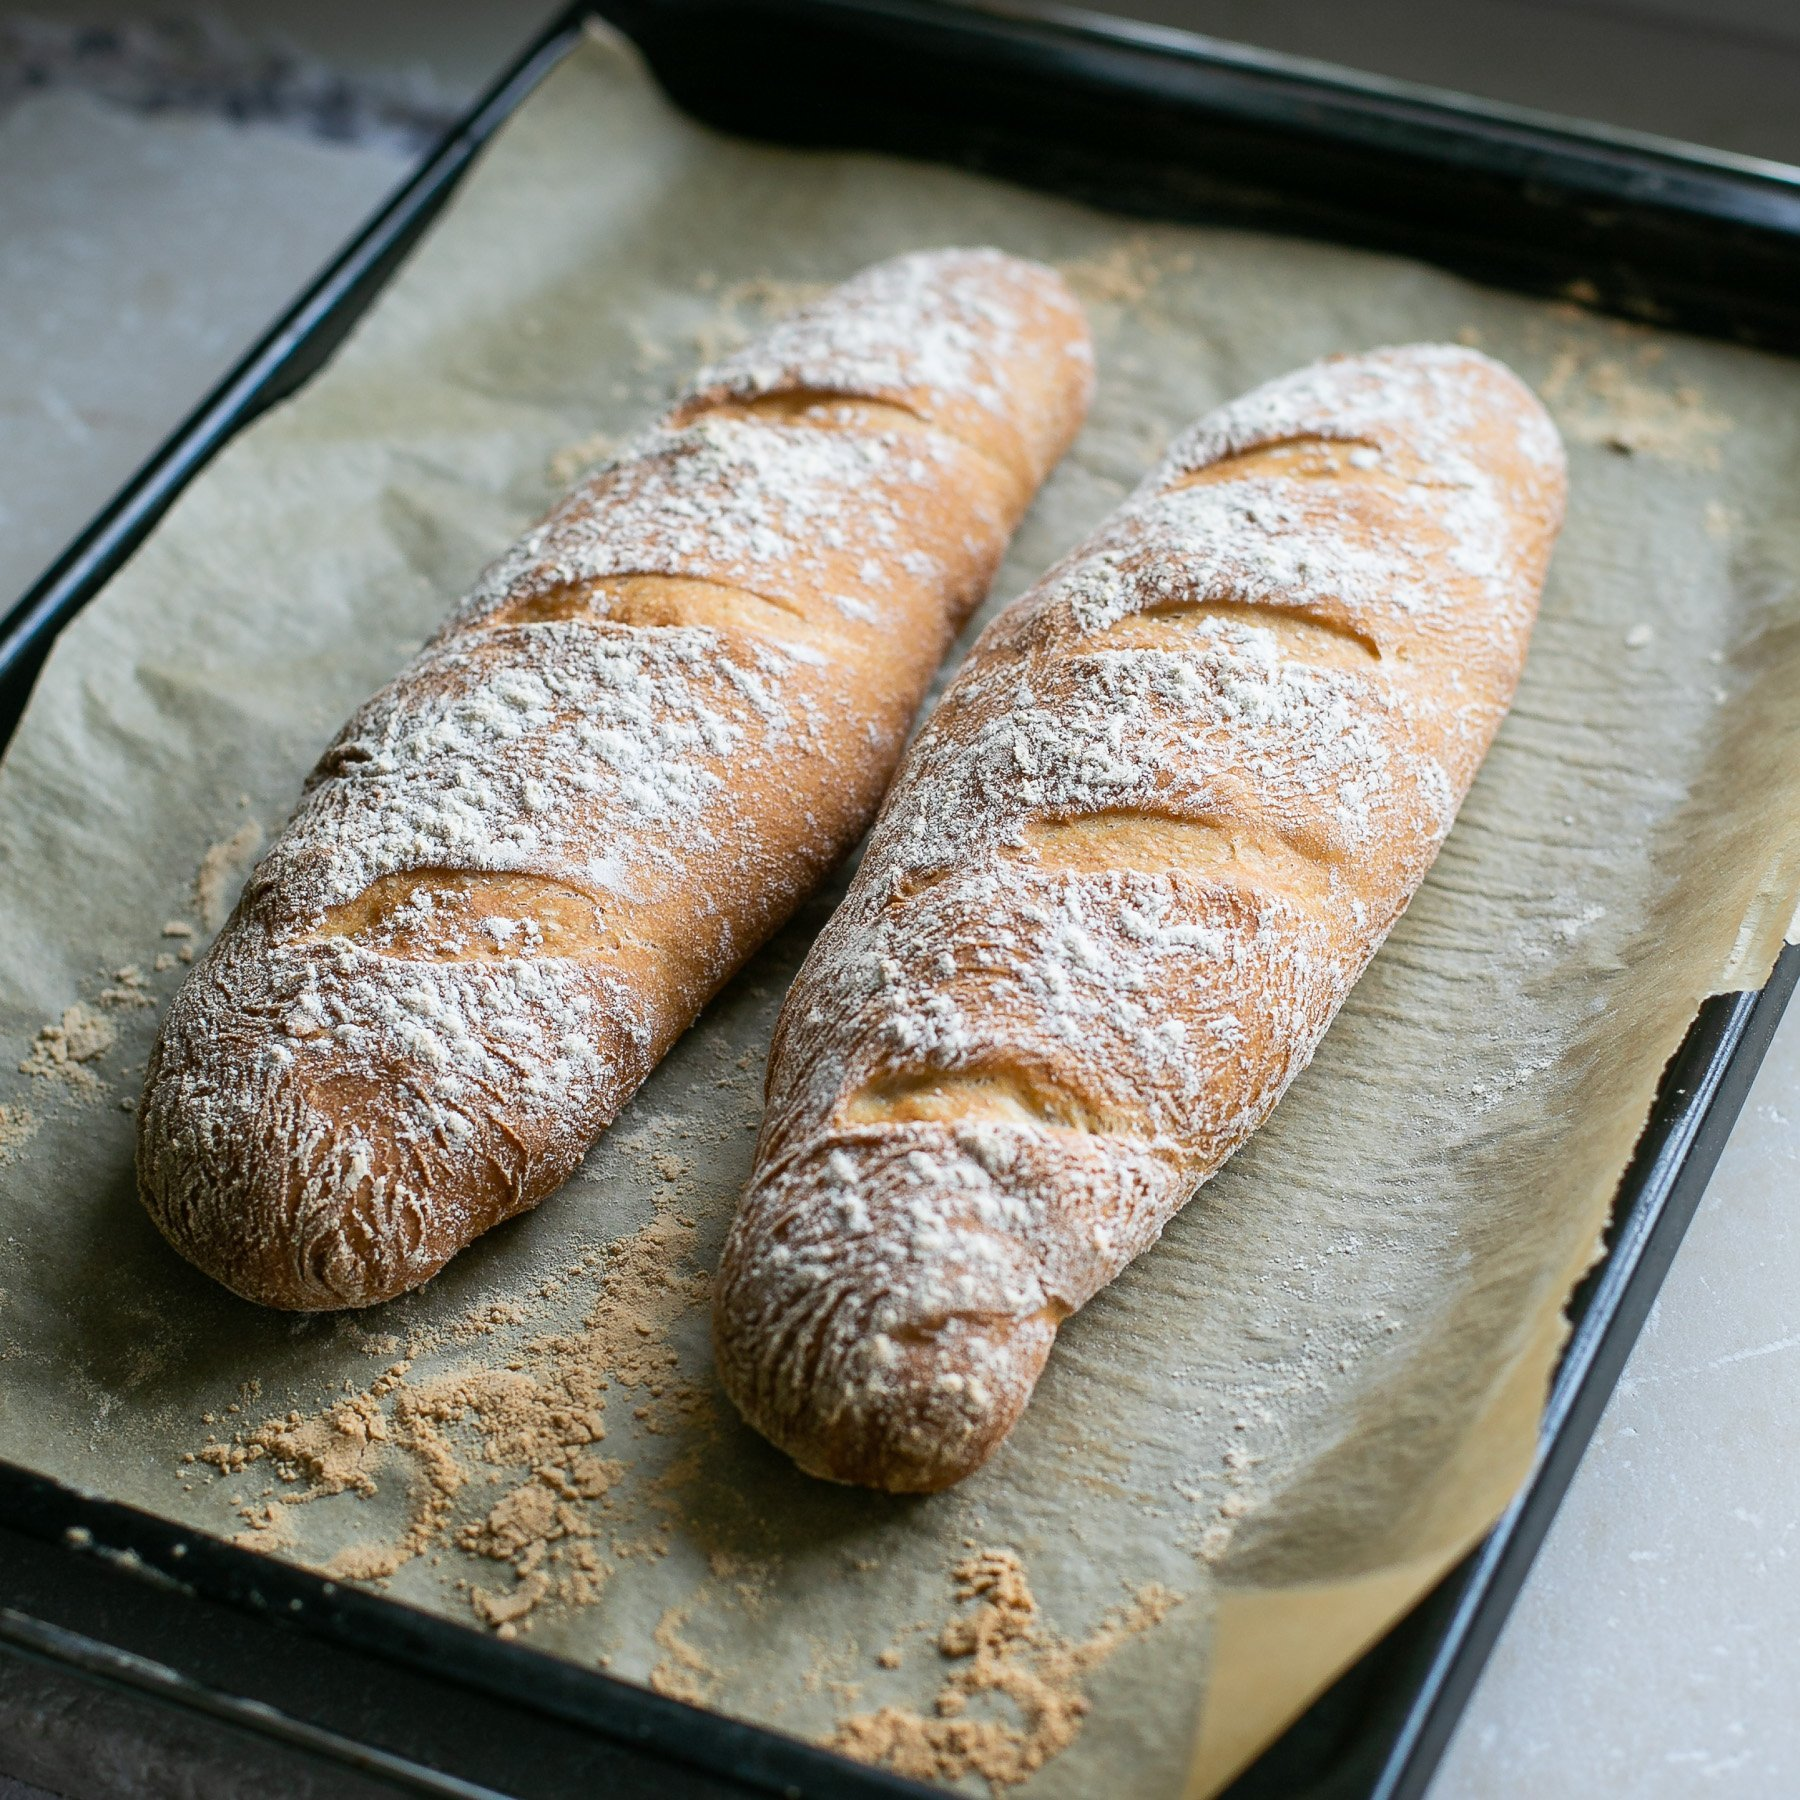 Finished baked baguettes out of the oven